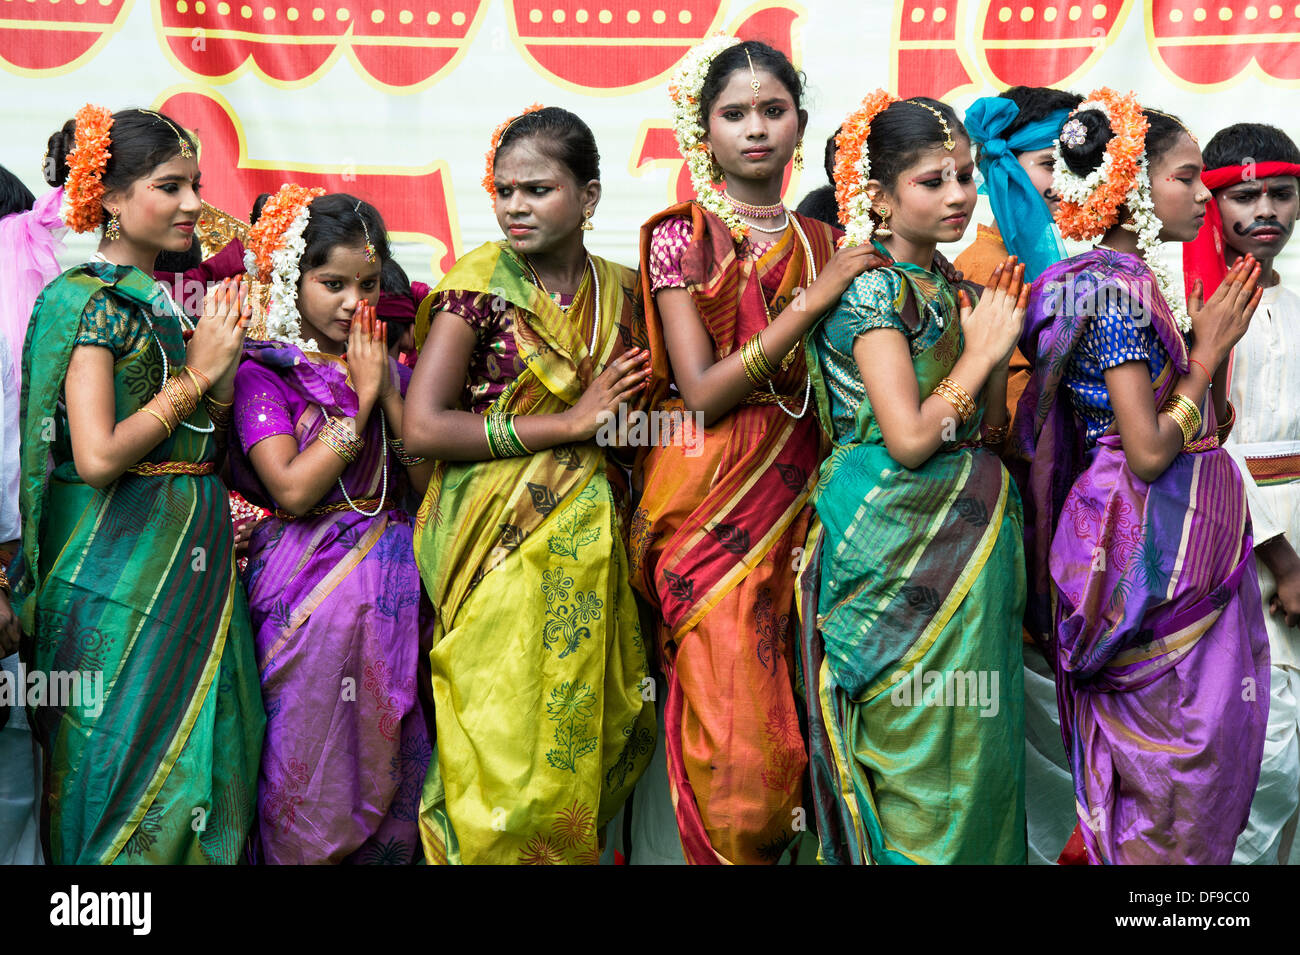 Indian girls dressed in traditional colourful silk saris at a protest rally. Puttaparthi, Andhra Pradesh, India - Stock Image